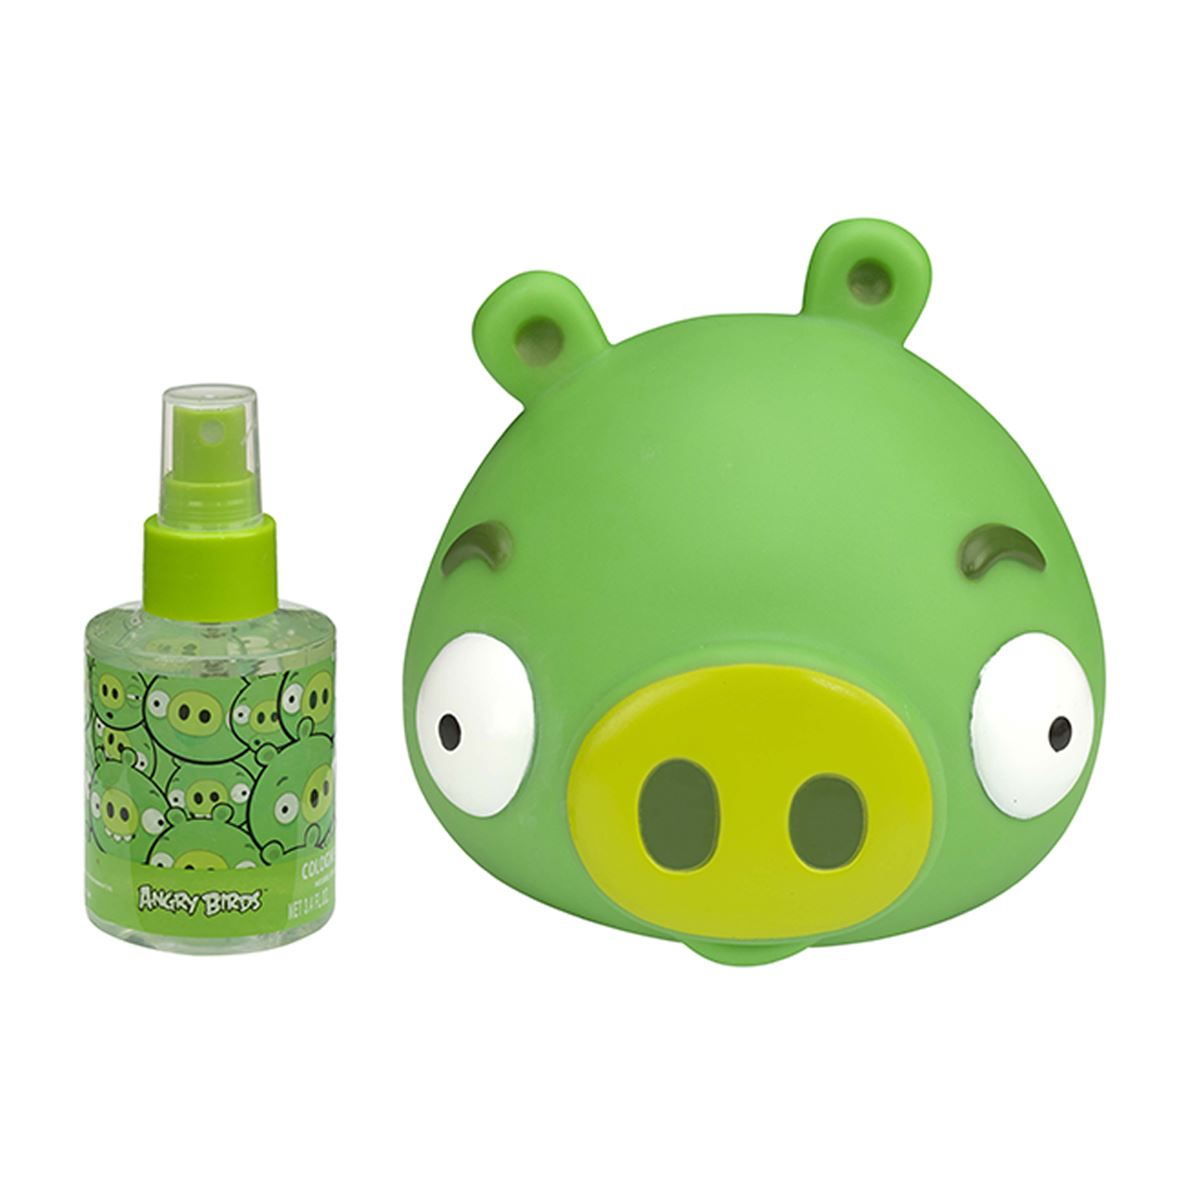 Angry birds 3d cologne king pig 100 ml  - Sanborns